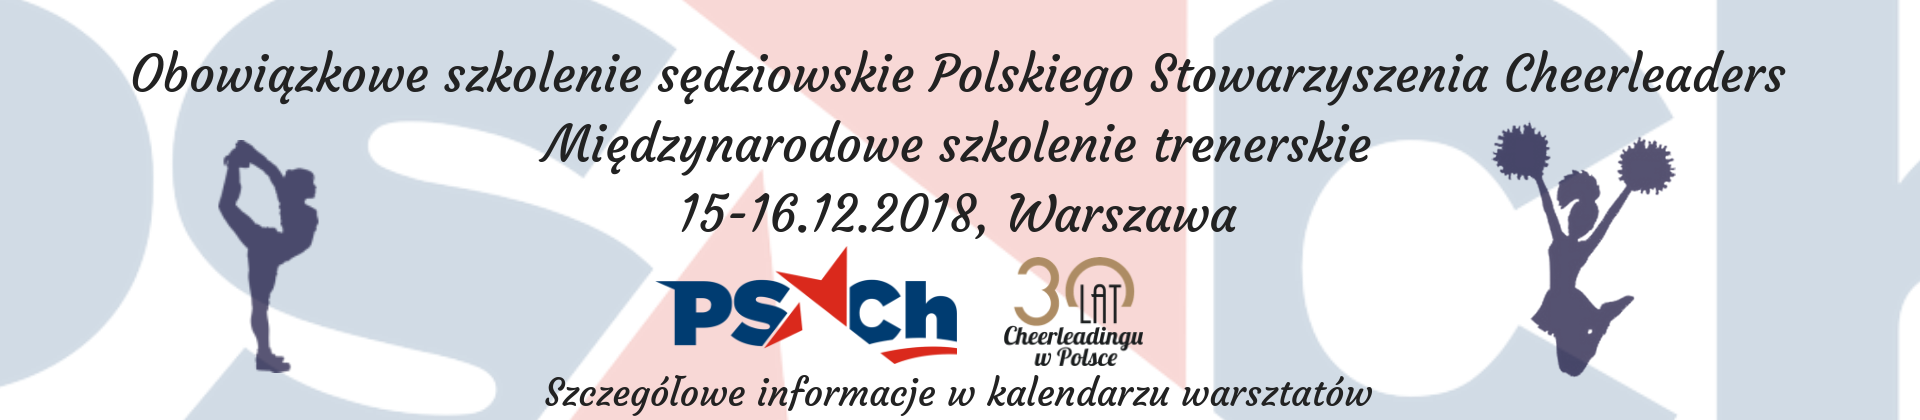 Grand Prix Polski Cheerleaders 2018 (8)